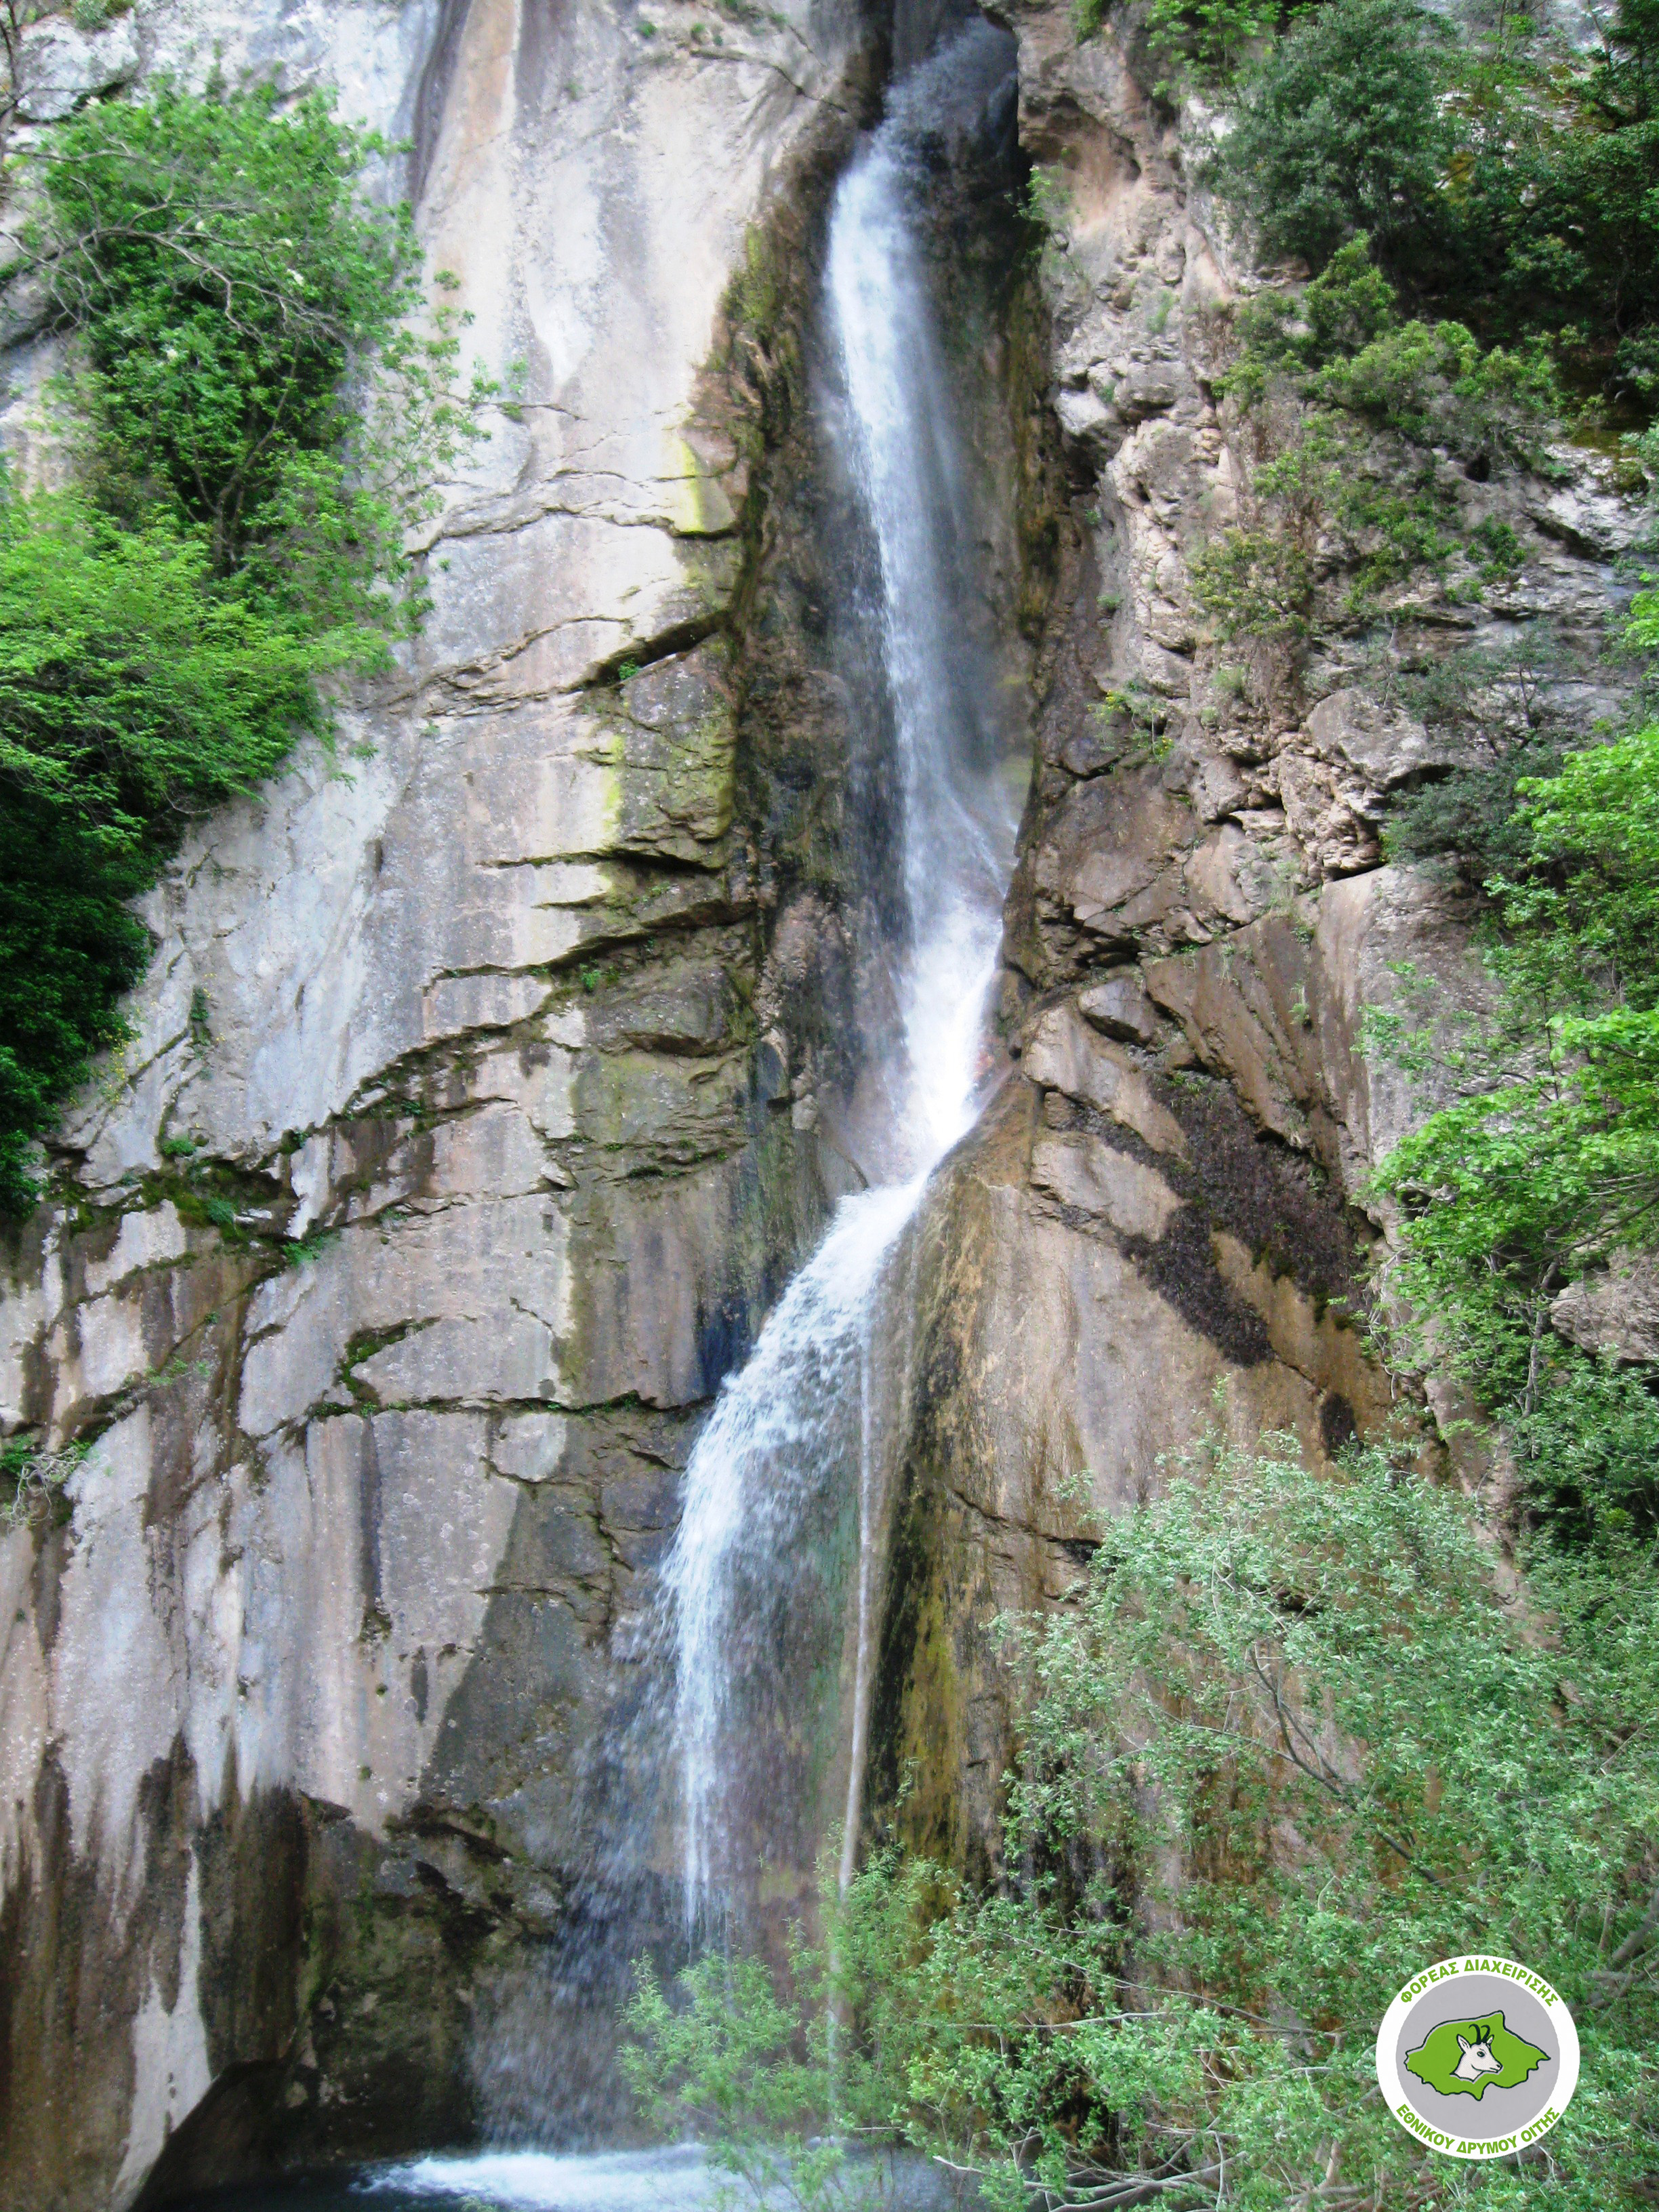 Ypati – Kremastos waterfall – Ypati (Farmakides Path)